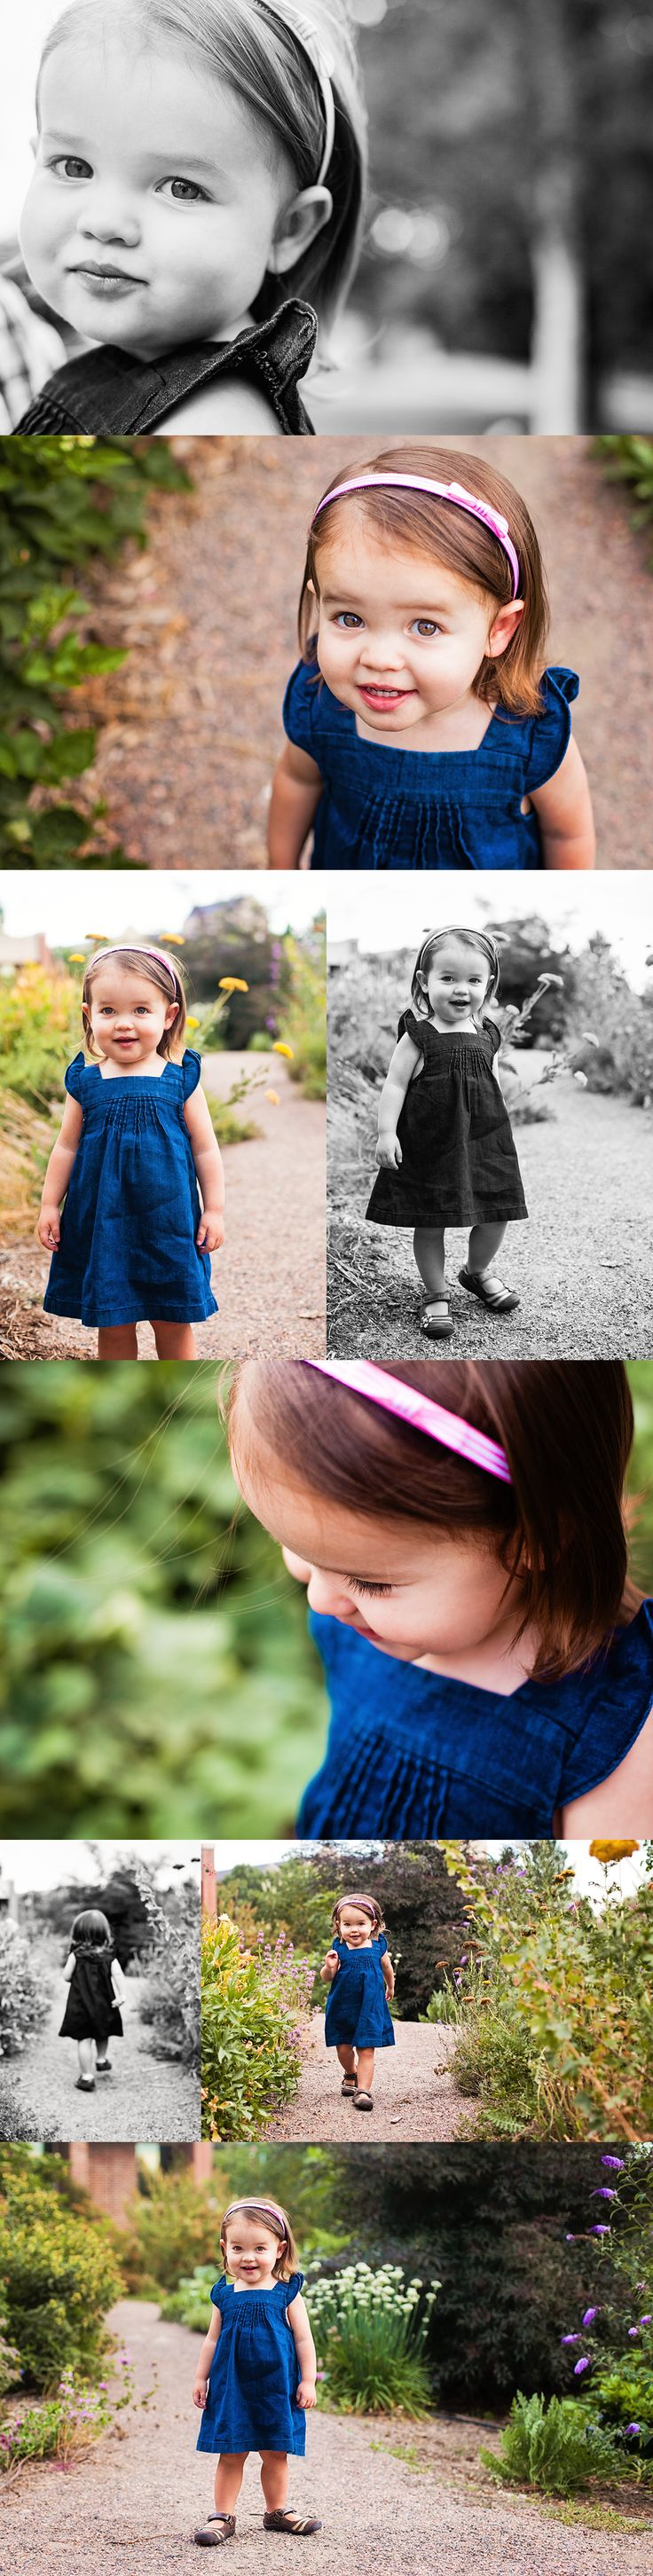 Two Year Old Portraits | Sara Garcia Photo Art